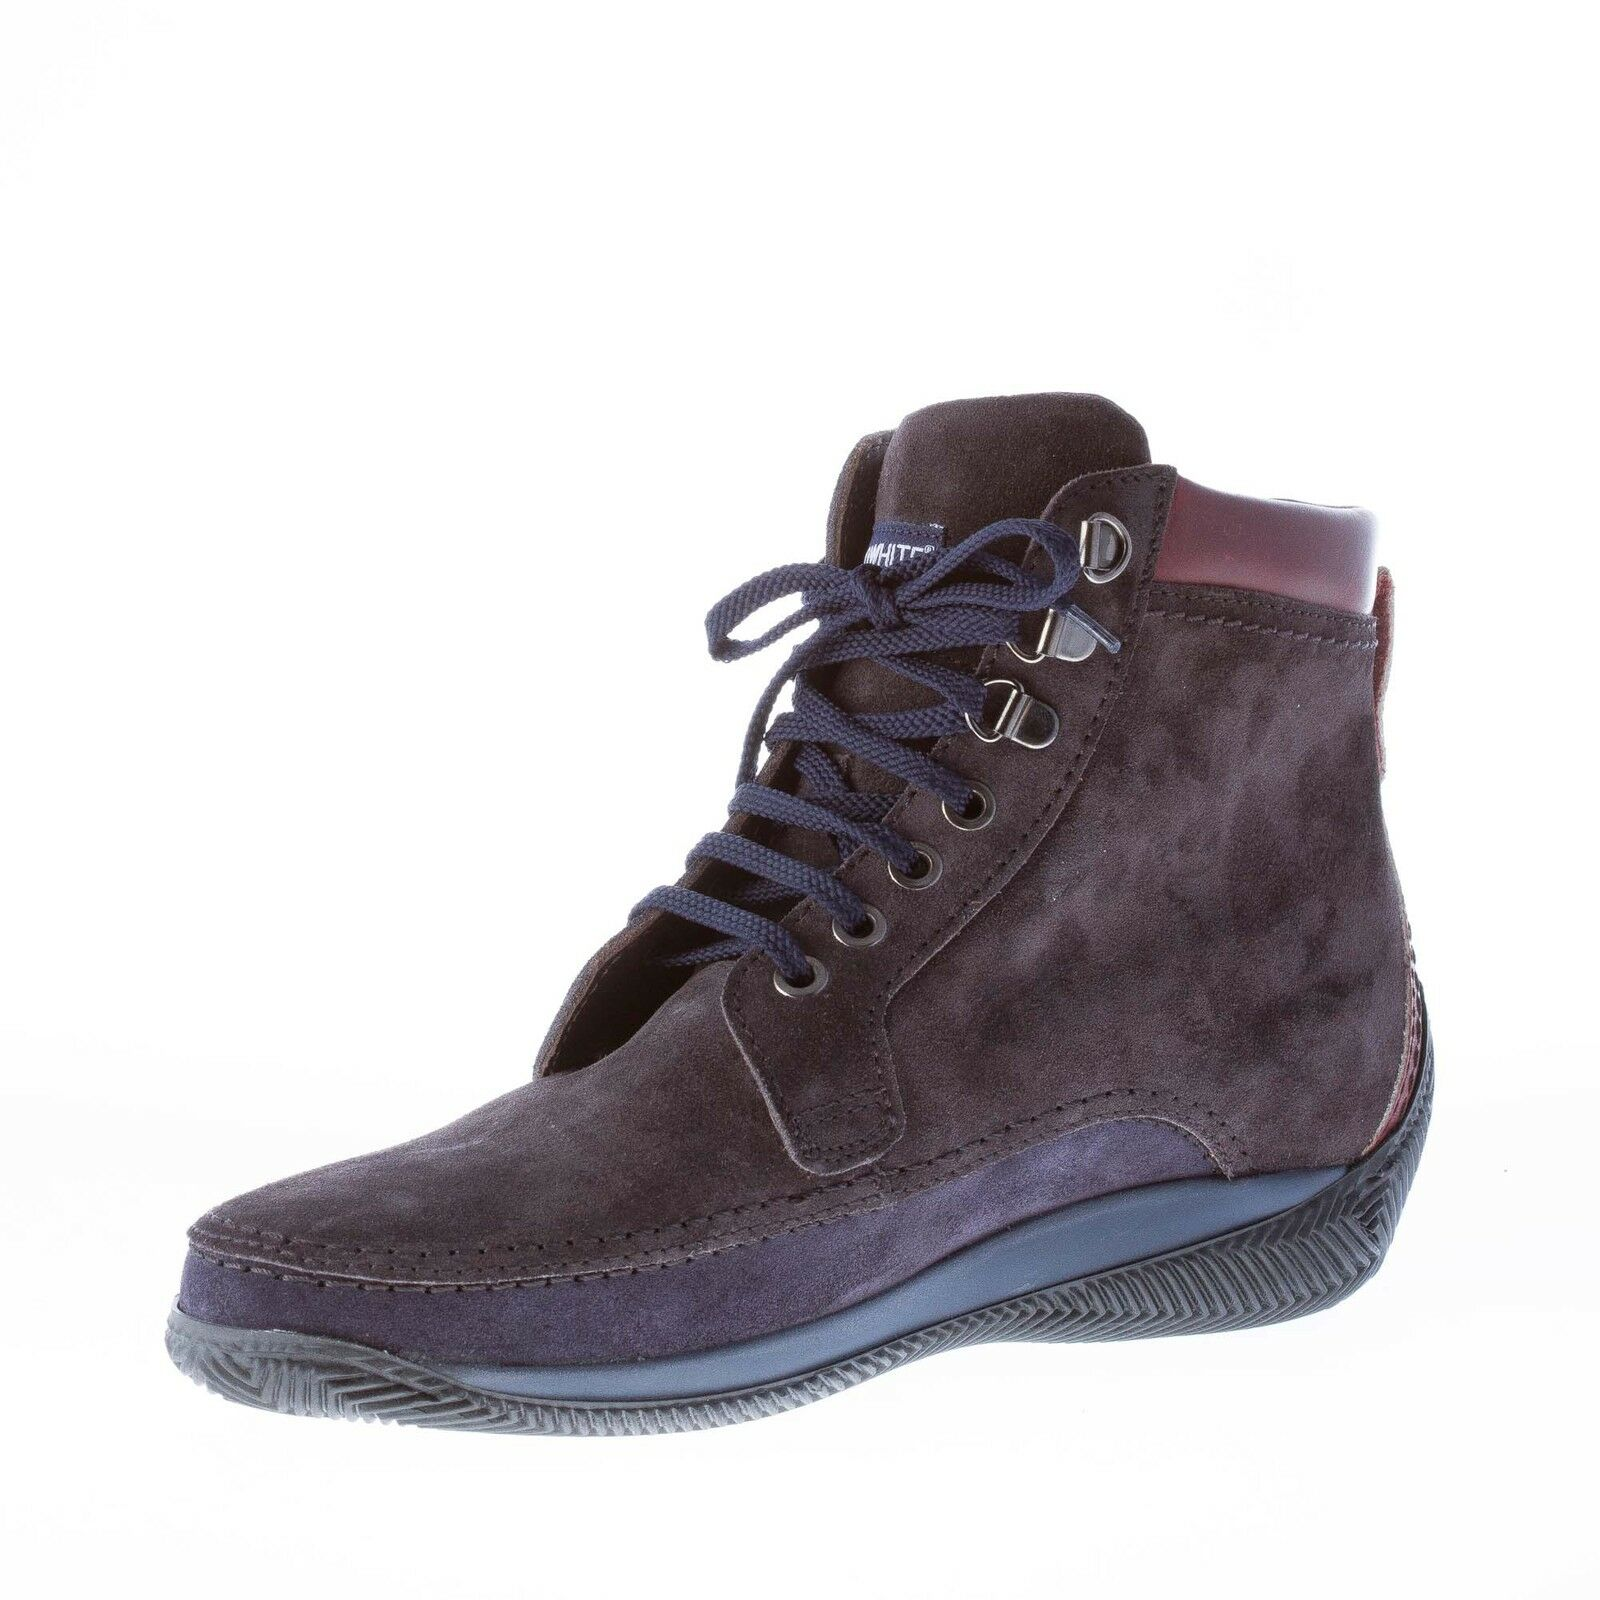 LO suede WHITE herren schuhe men shoes Two-tones grey suede LO laced boot brown leather 9095be